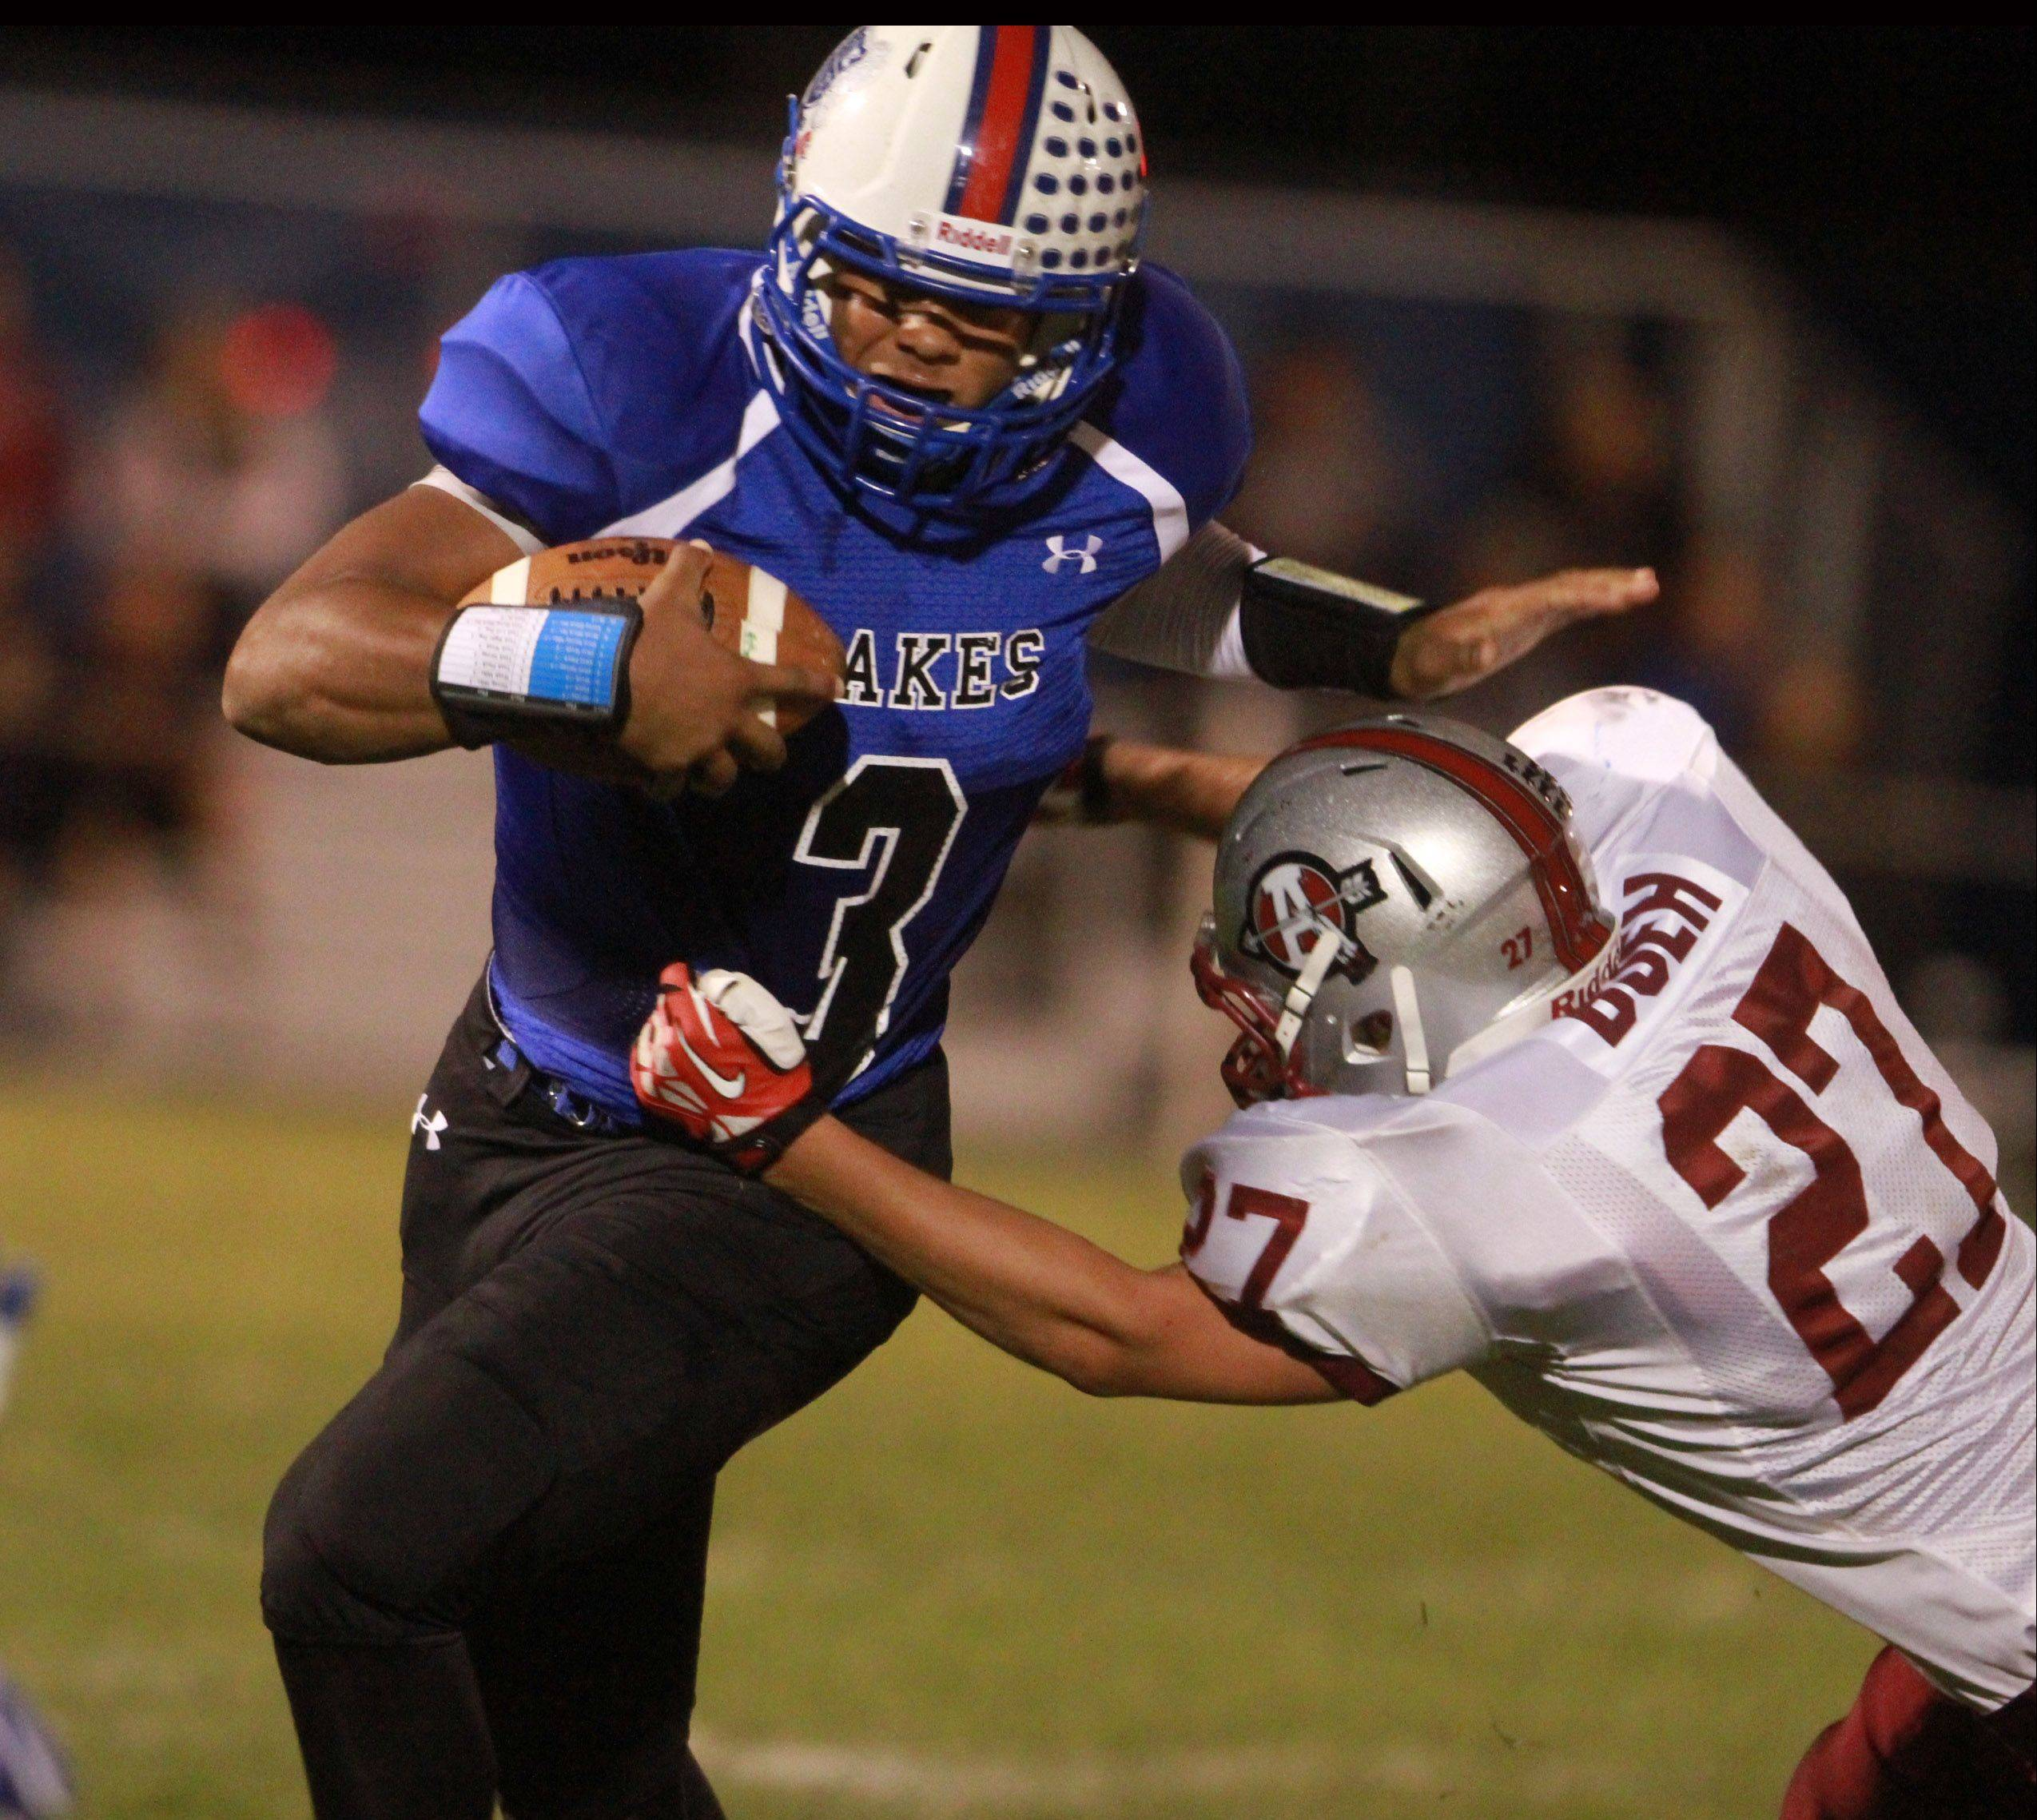 Lakes quarterback TJ Edwards tries to fend off Antioch tackler Jackson Boeh at Lakes on Friday.